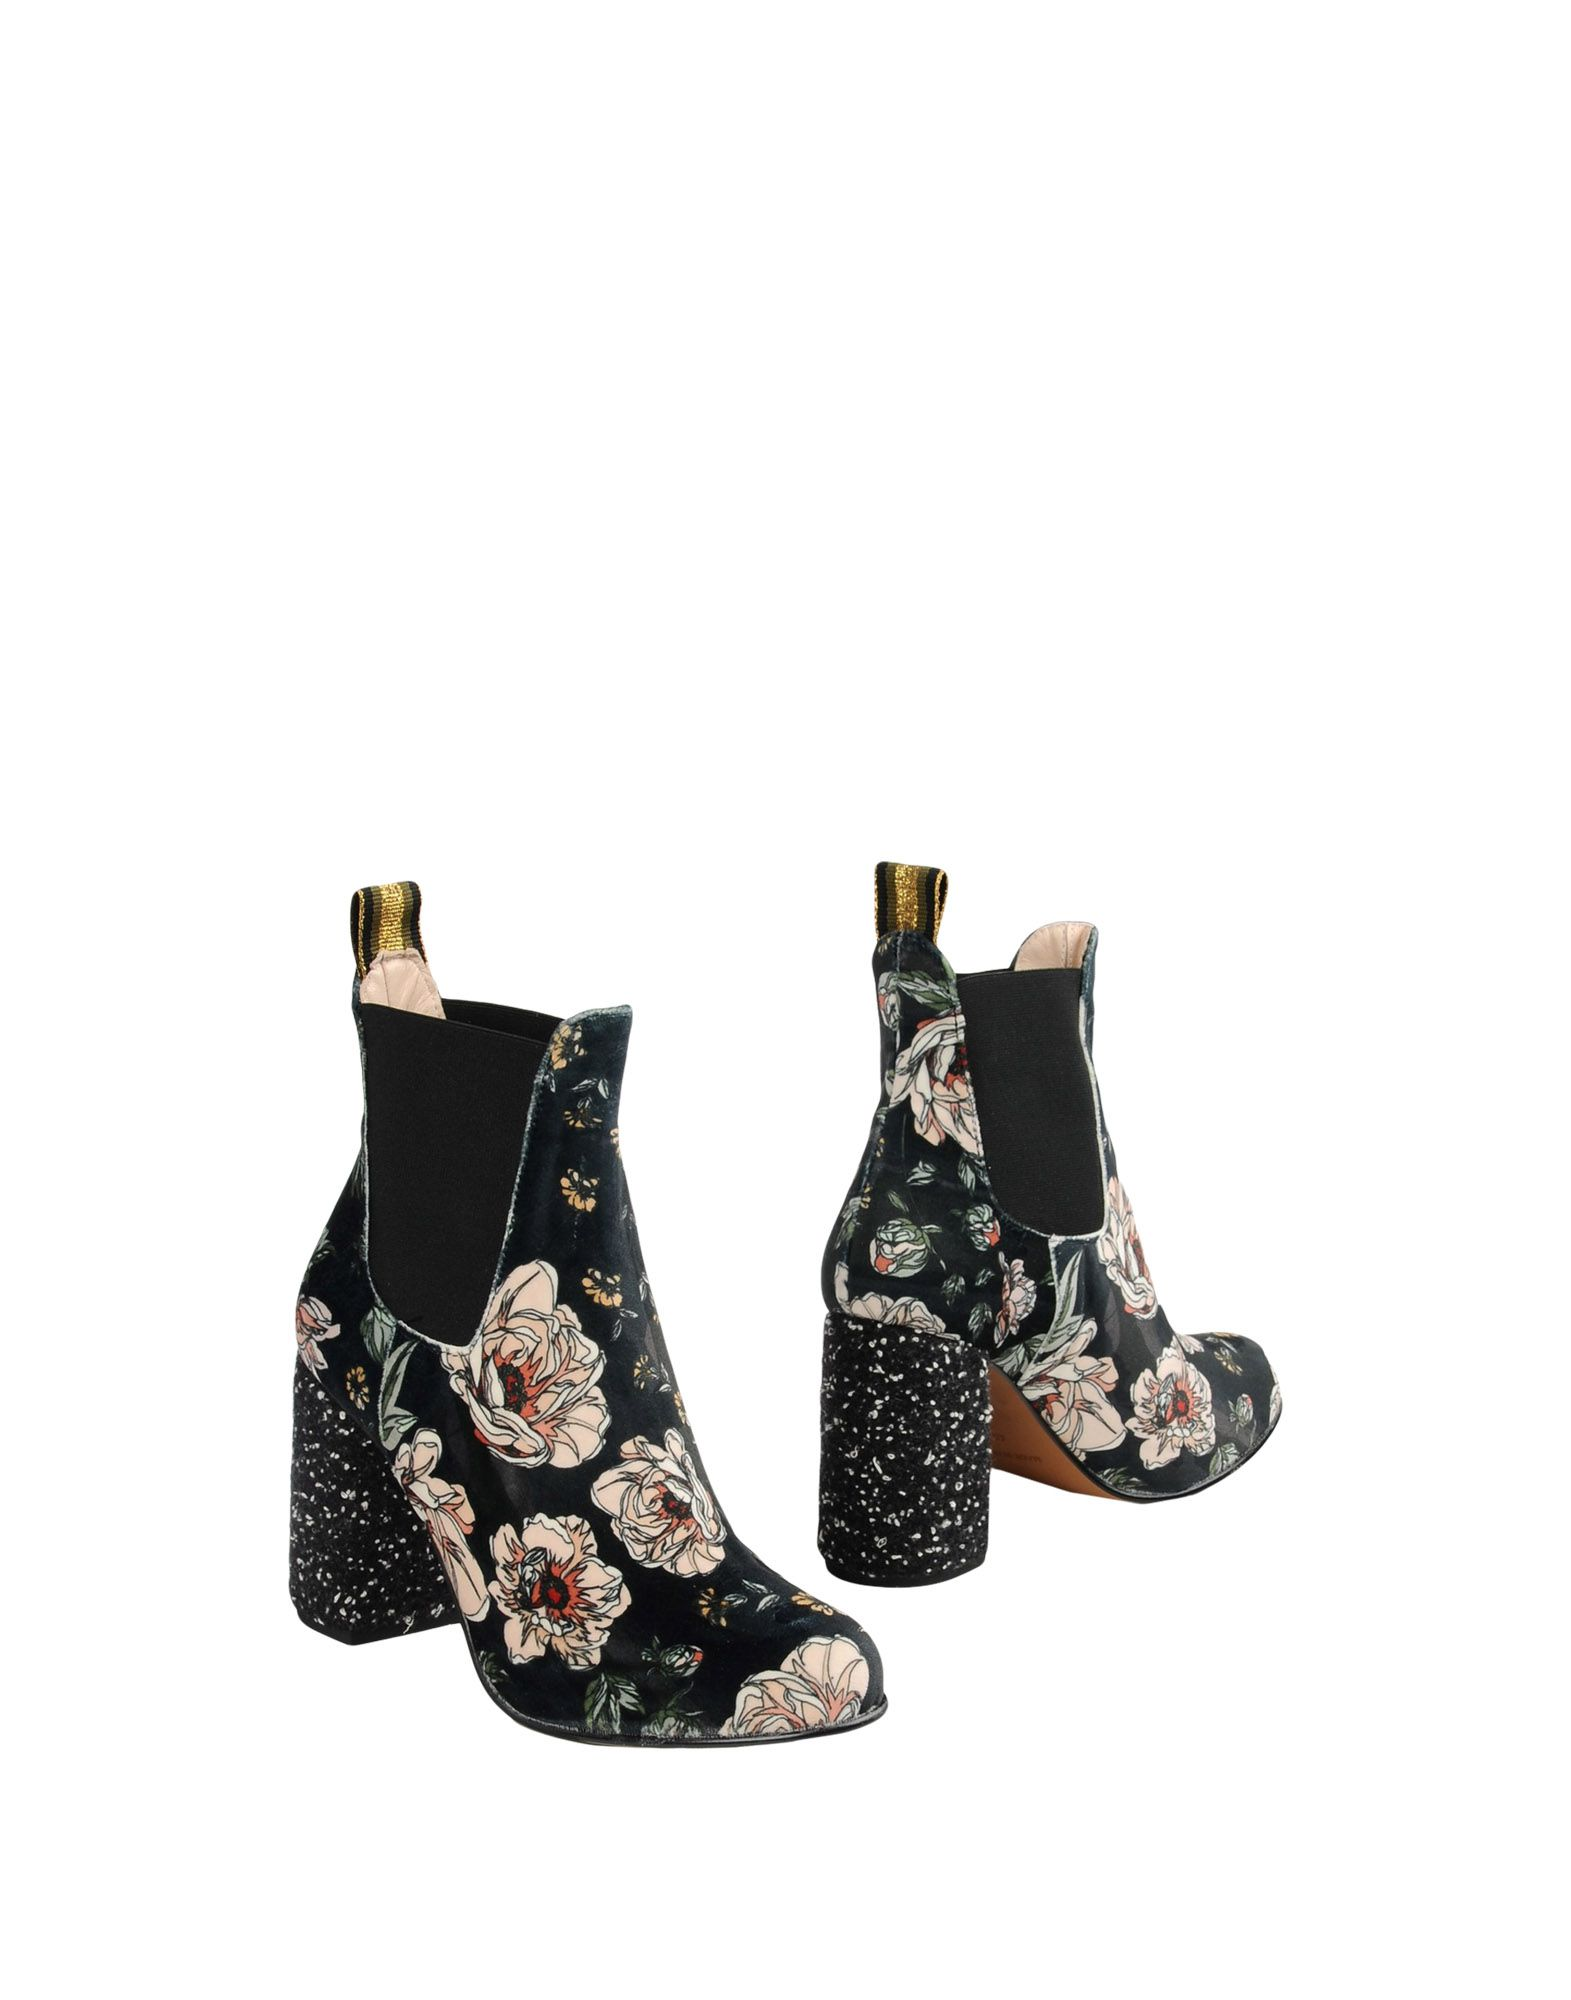 Bottine Leo Studio Design Printed Ankle Boots - Femme - Bottines Leo Studio Design Vert foncé Chaussures casual sauvages